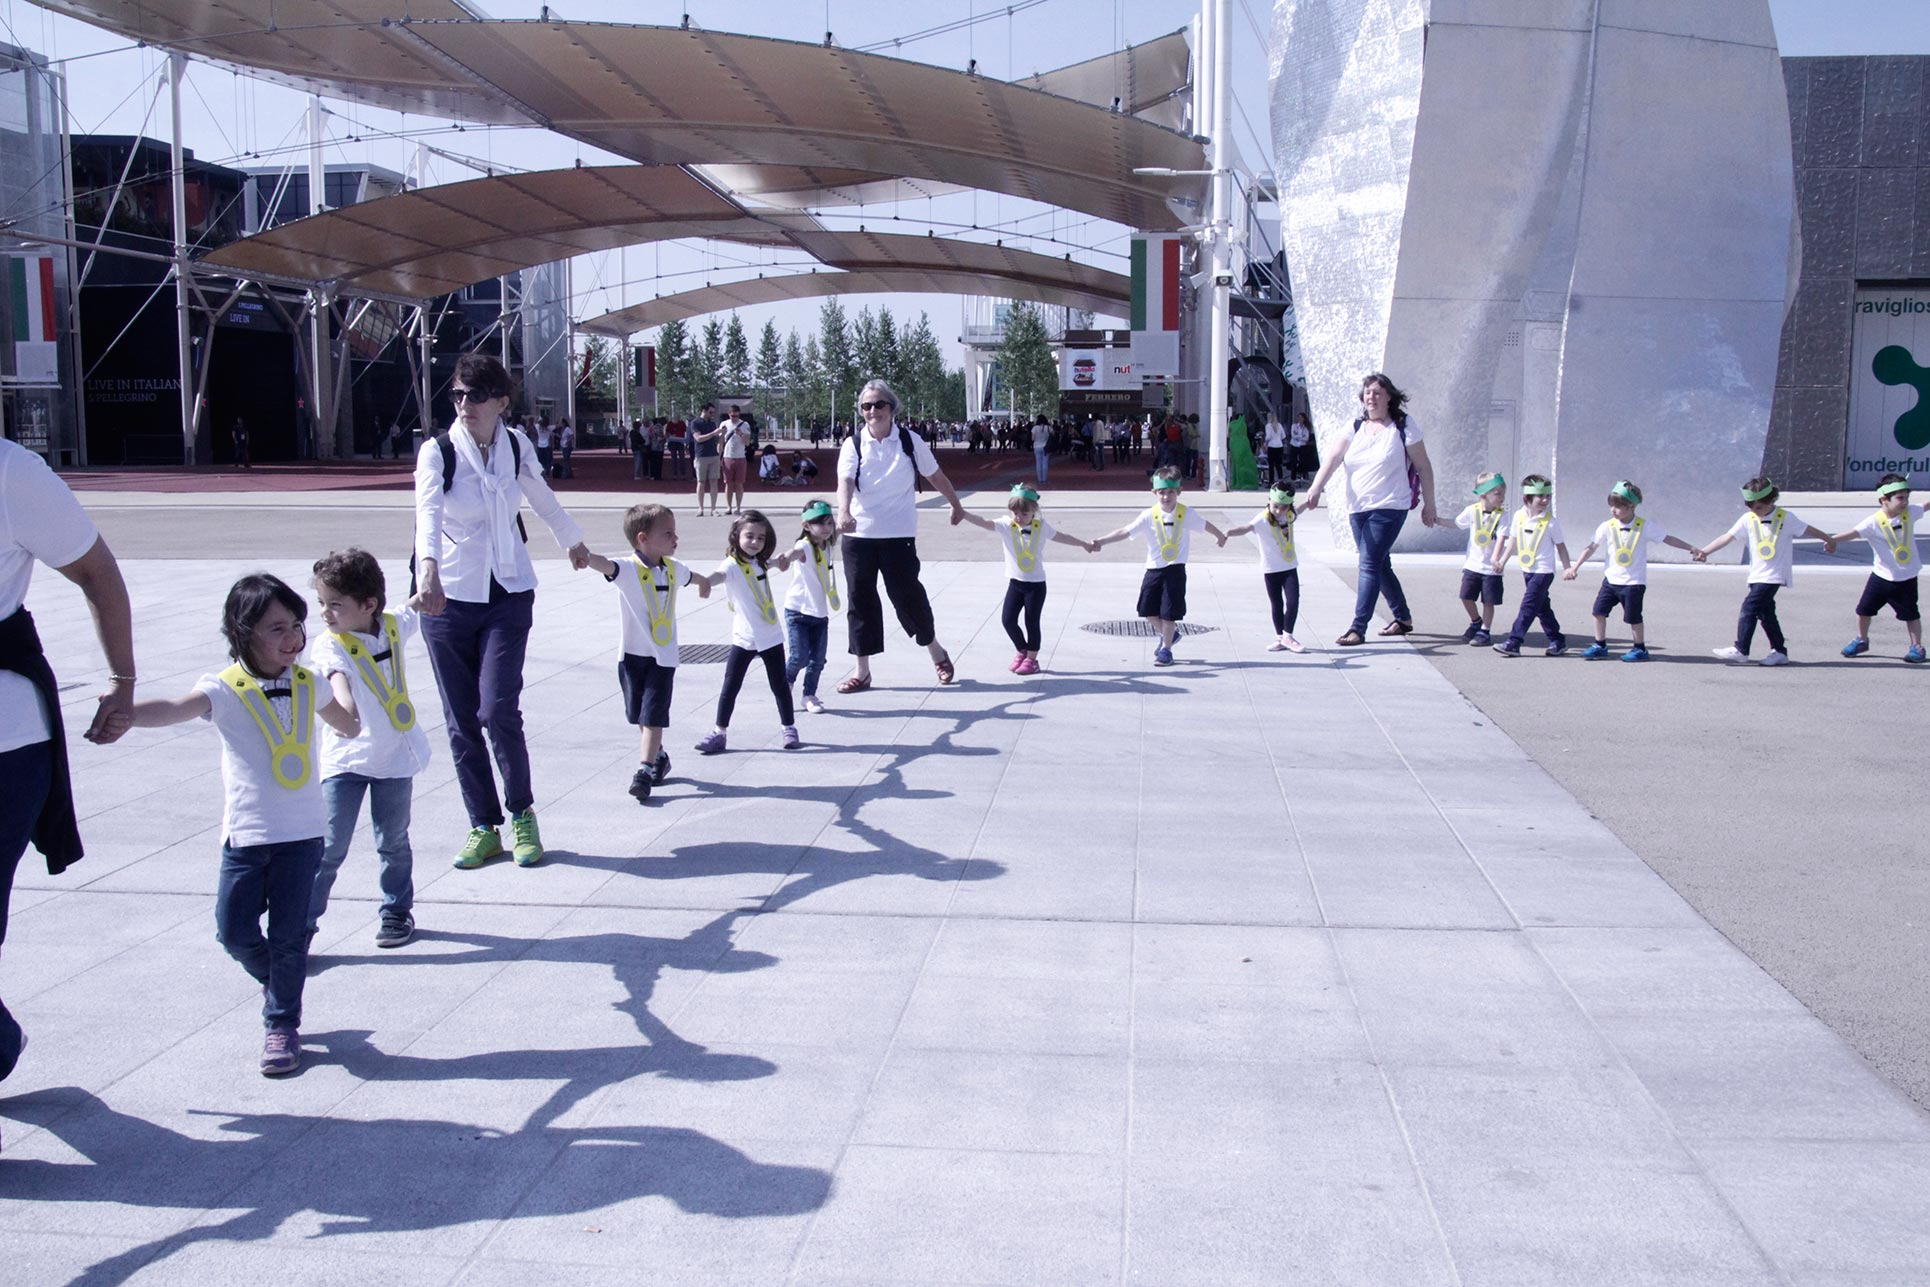 The kindergarten children forming a circle in the main square of Expo 2015 in Milan (Photo: Barbara Fässler)